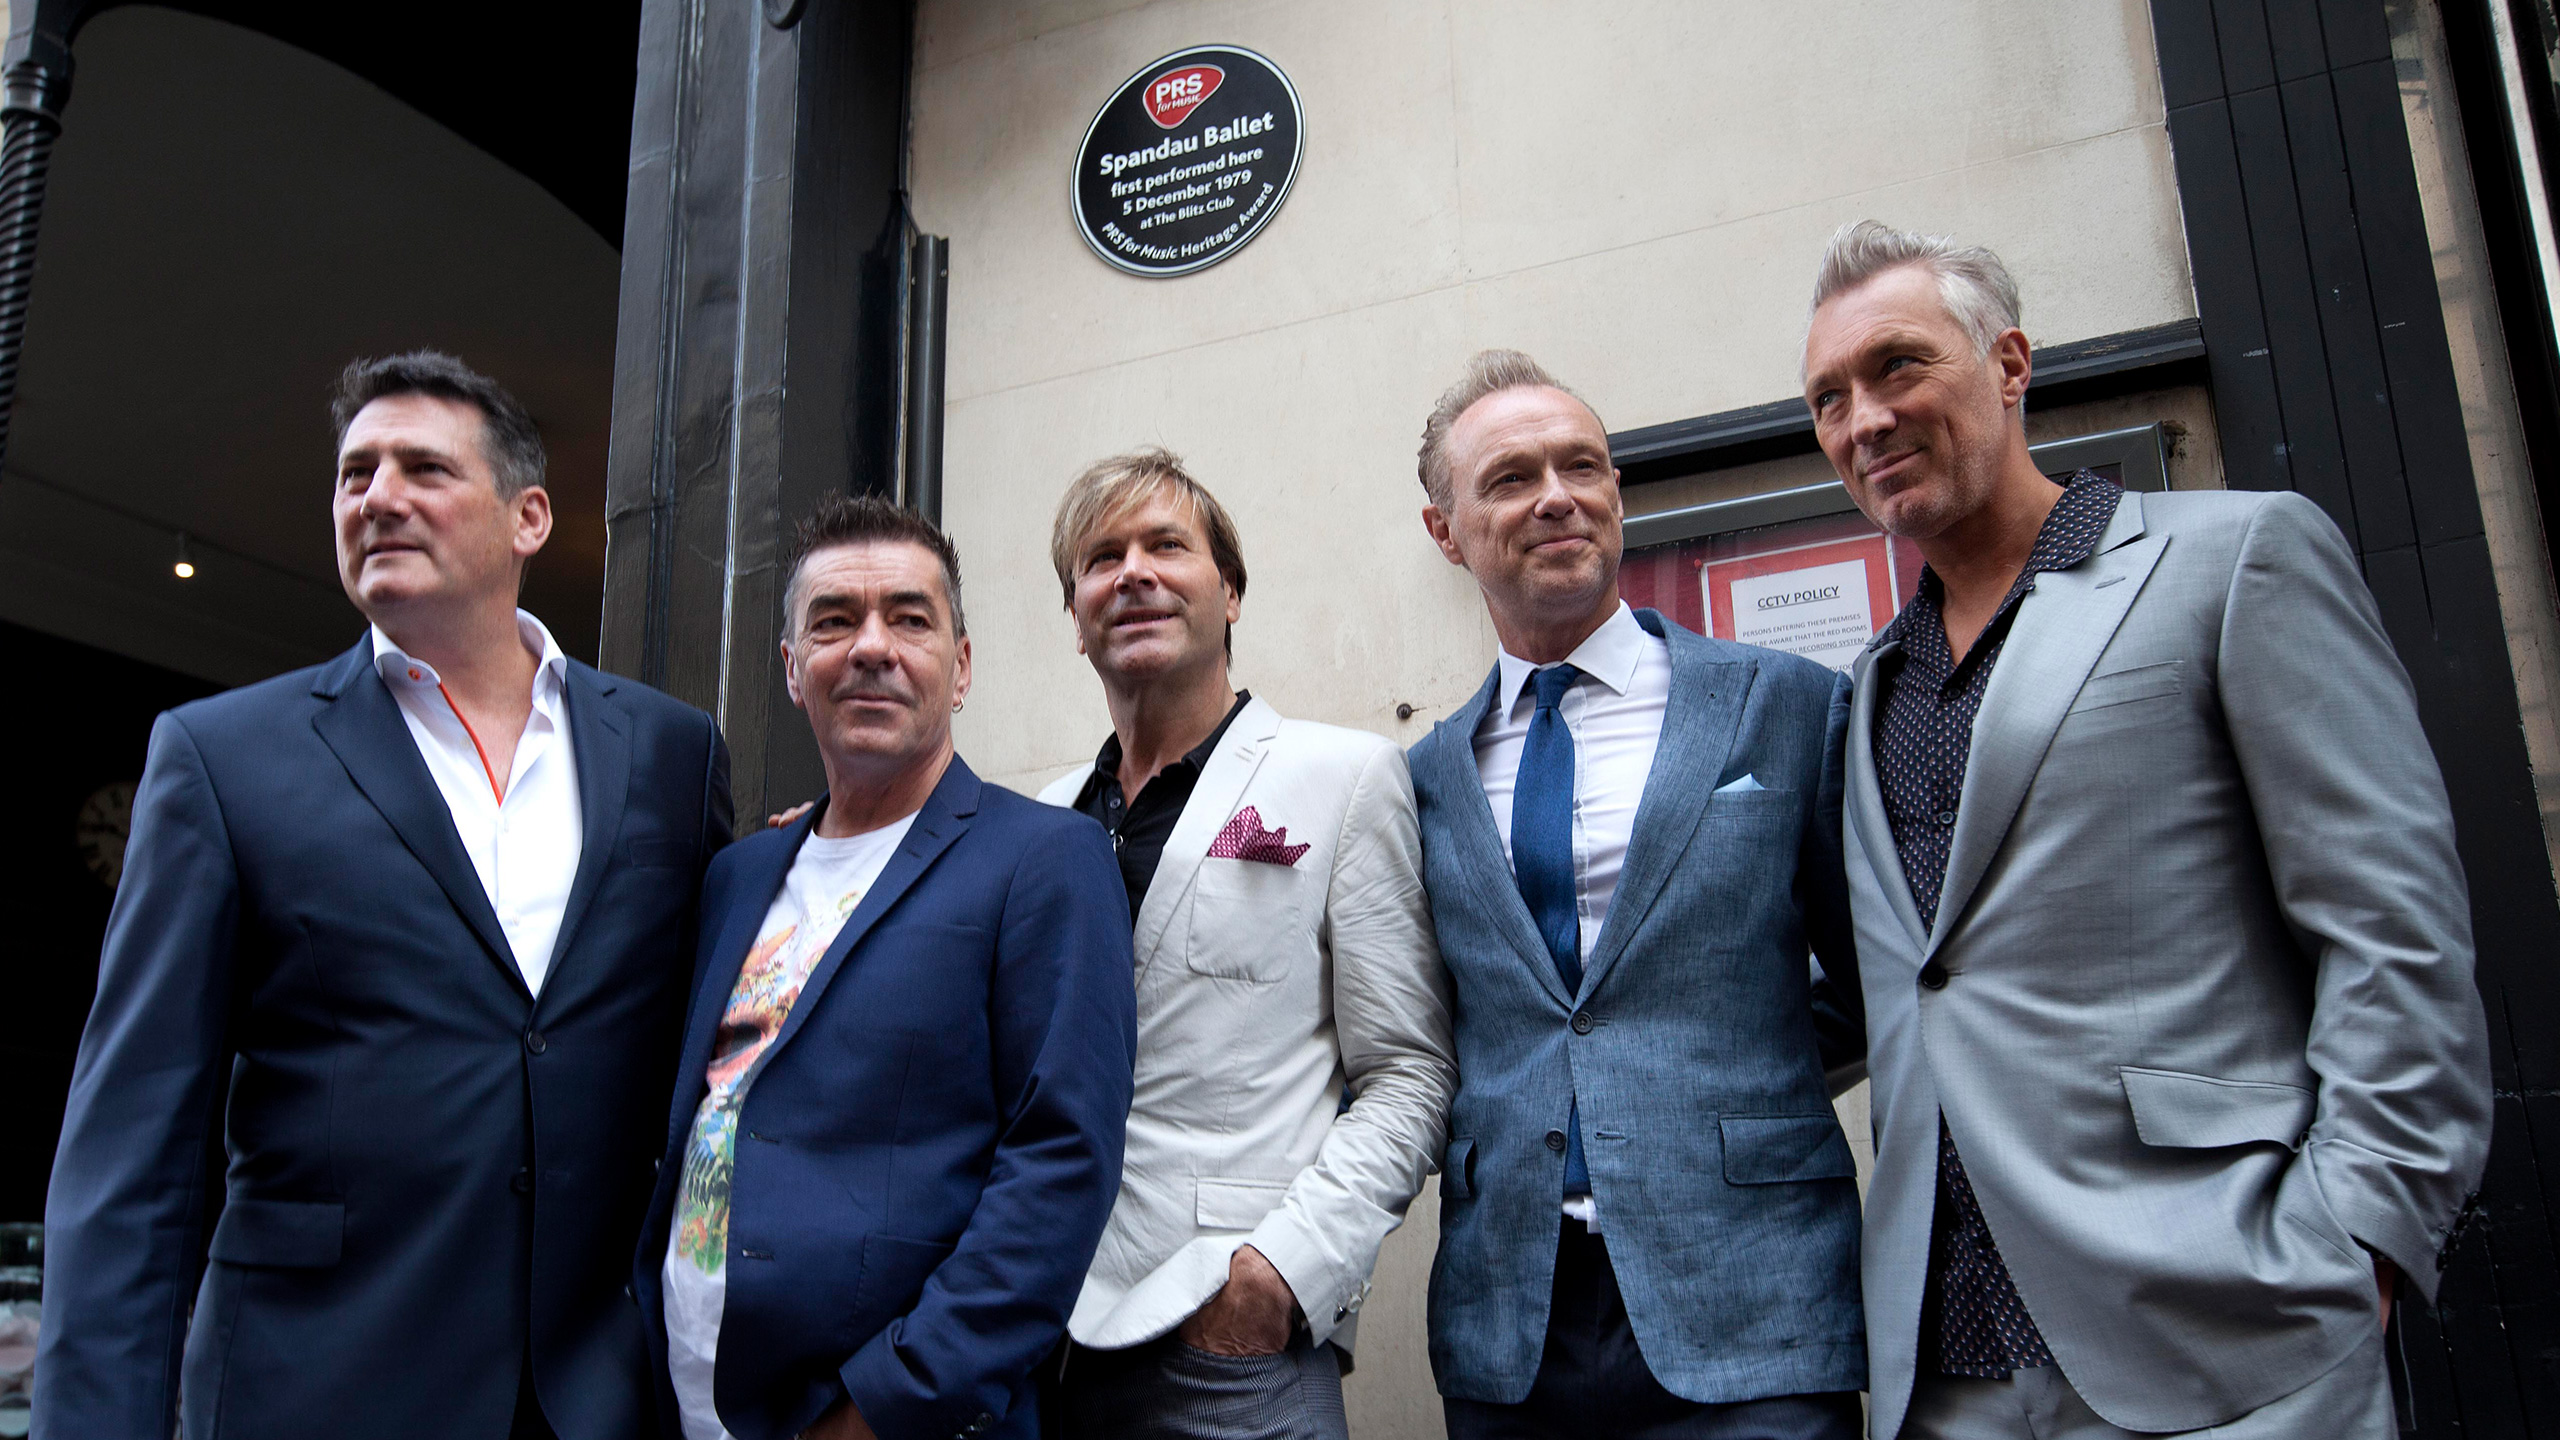 Spandau Ballet at The Blitz Club, London, celebrating their Heritage Award